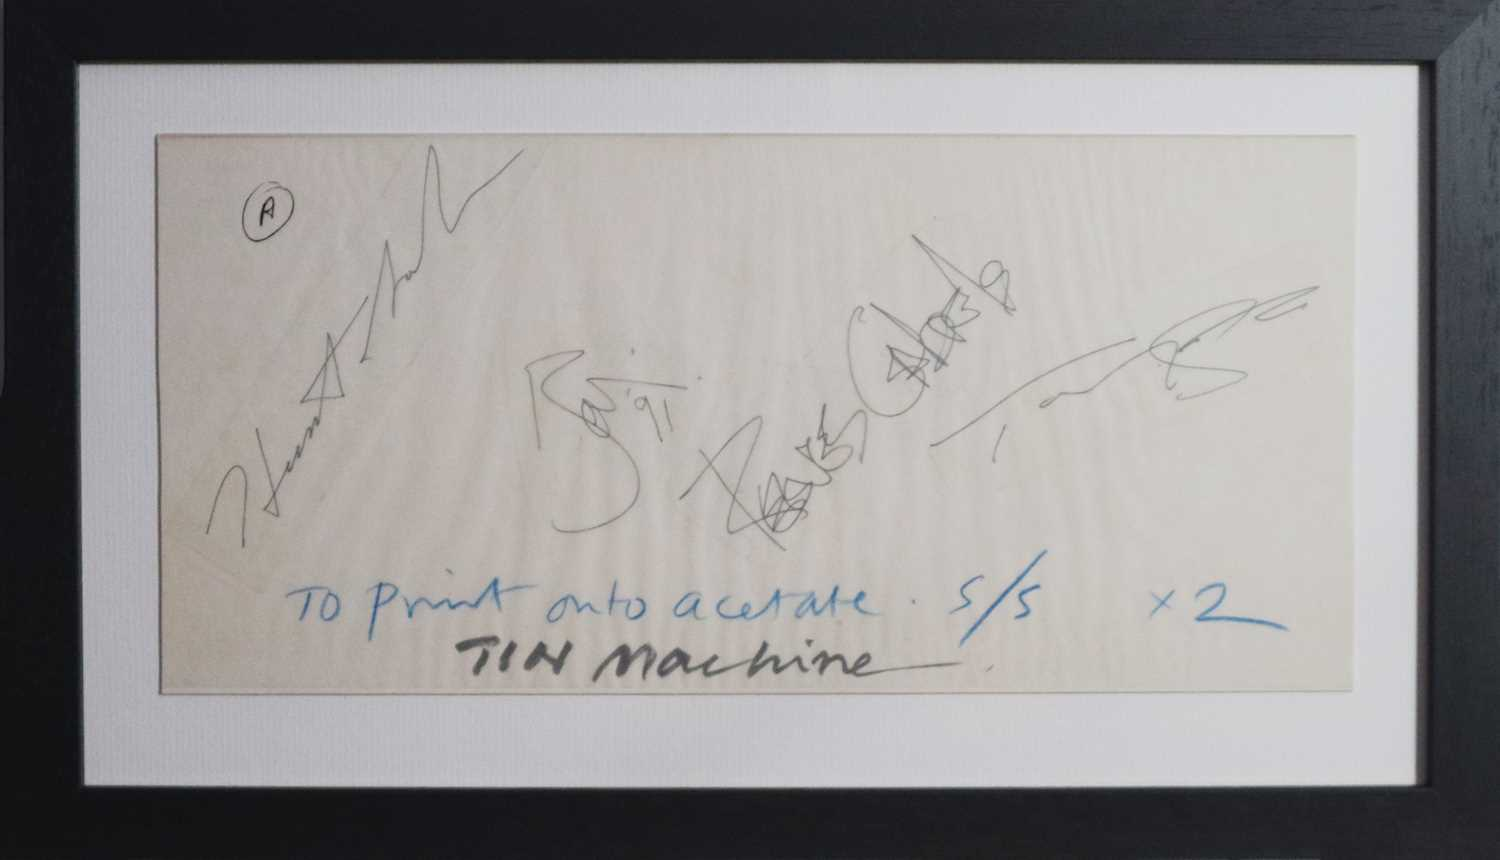 Lot David Bowie and Tin Machine Band Signatures